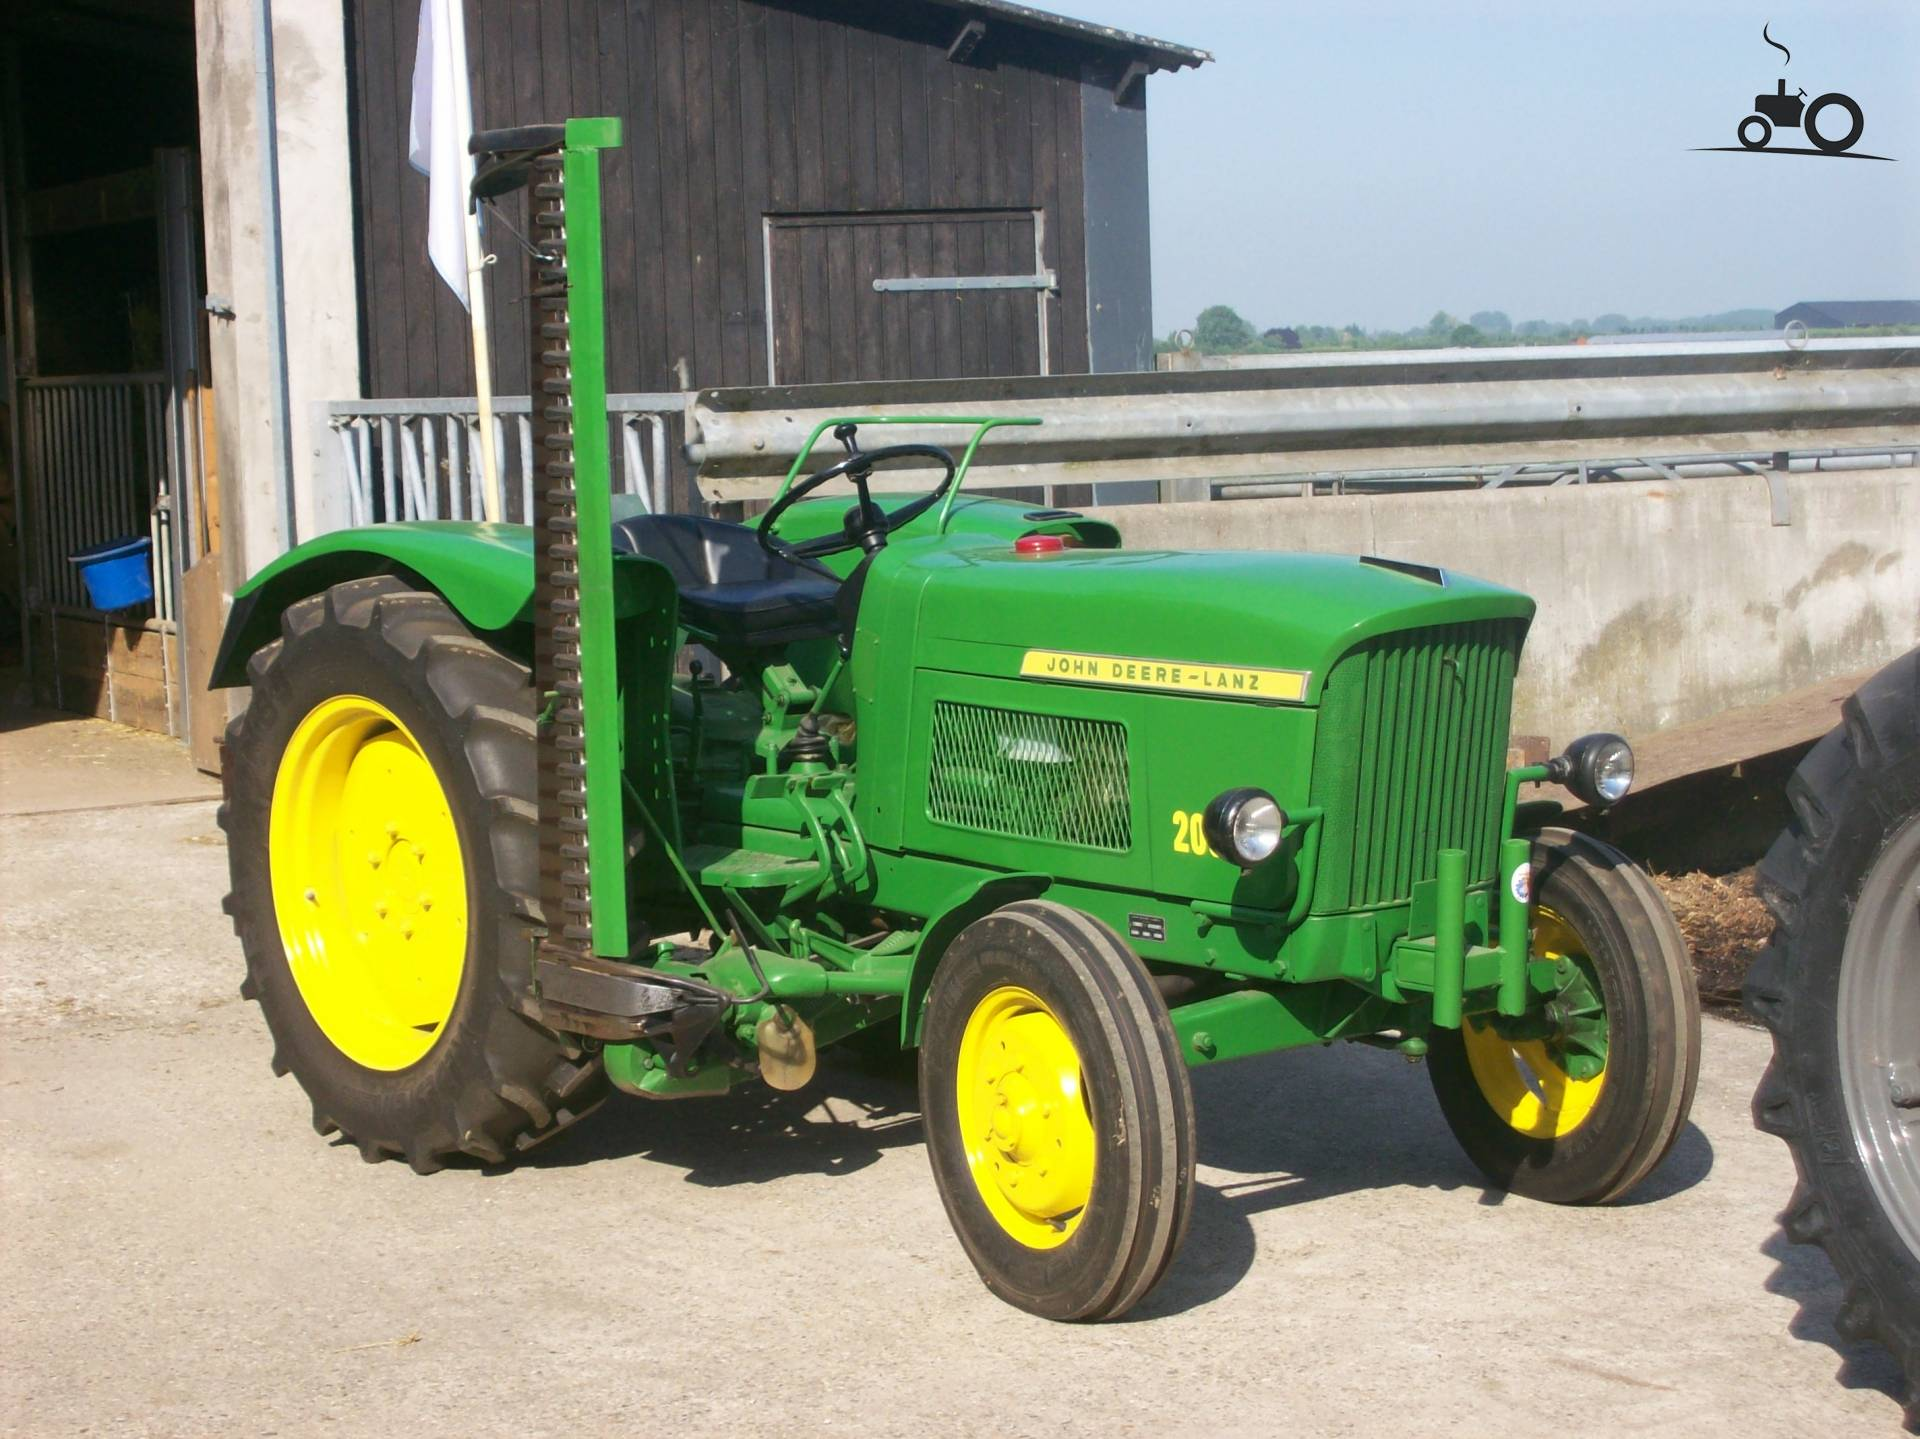 John Deere Lanz 200 Specs and data - Everything about the ...